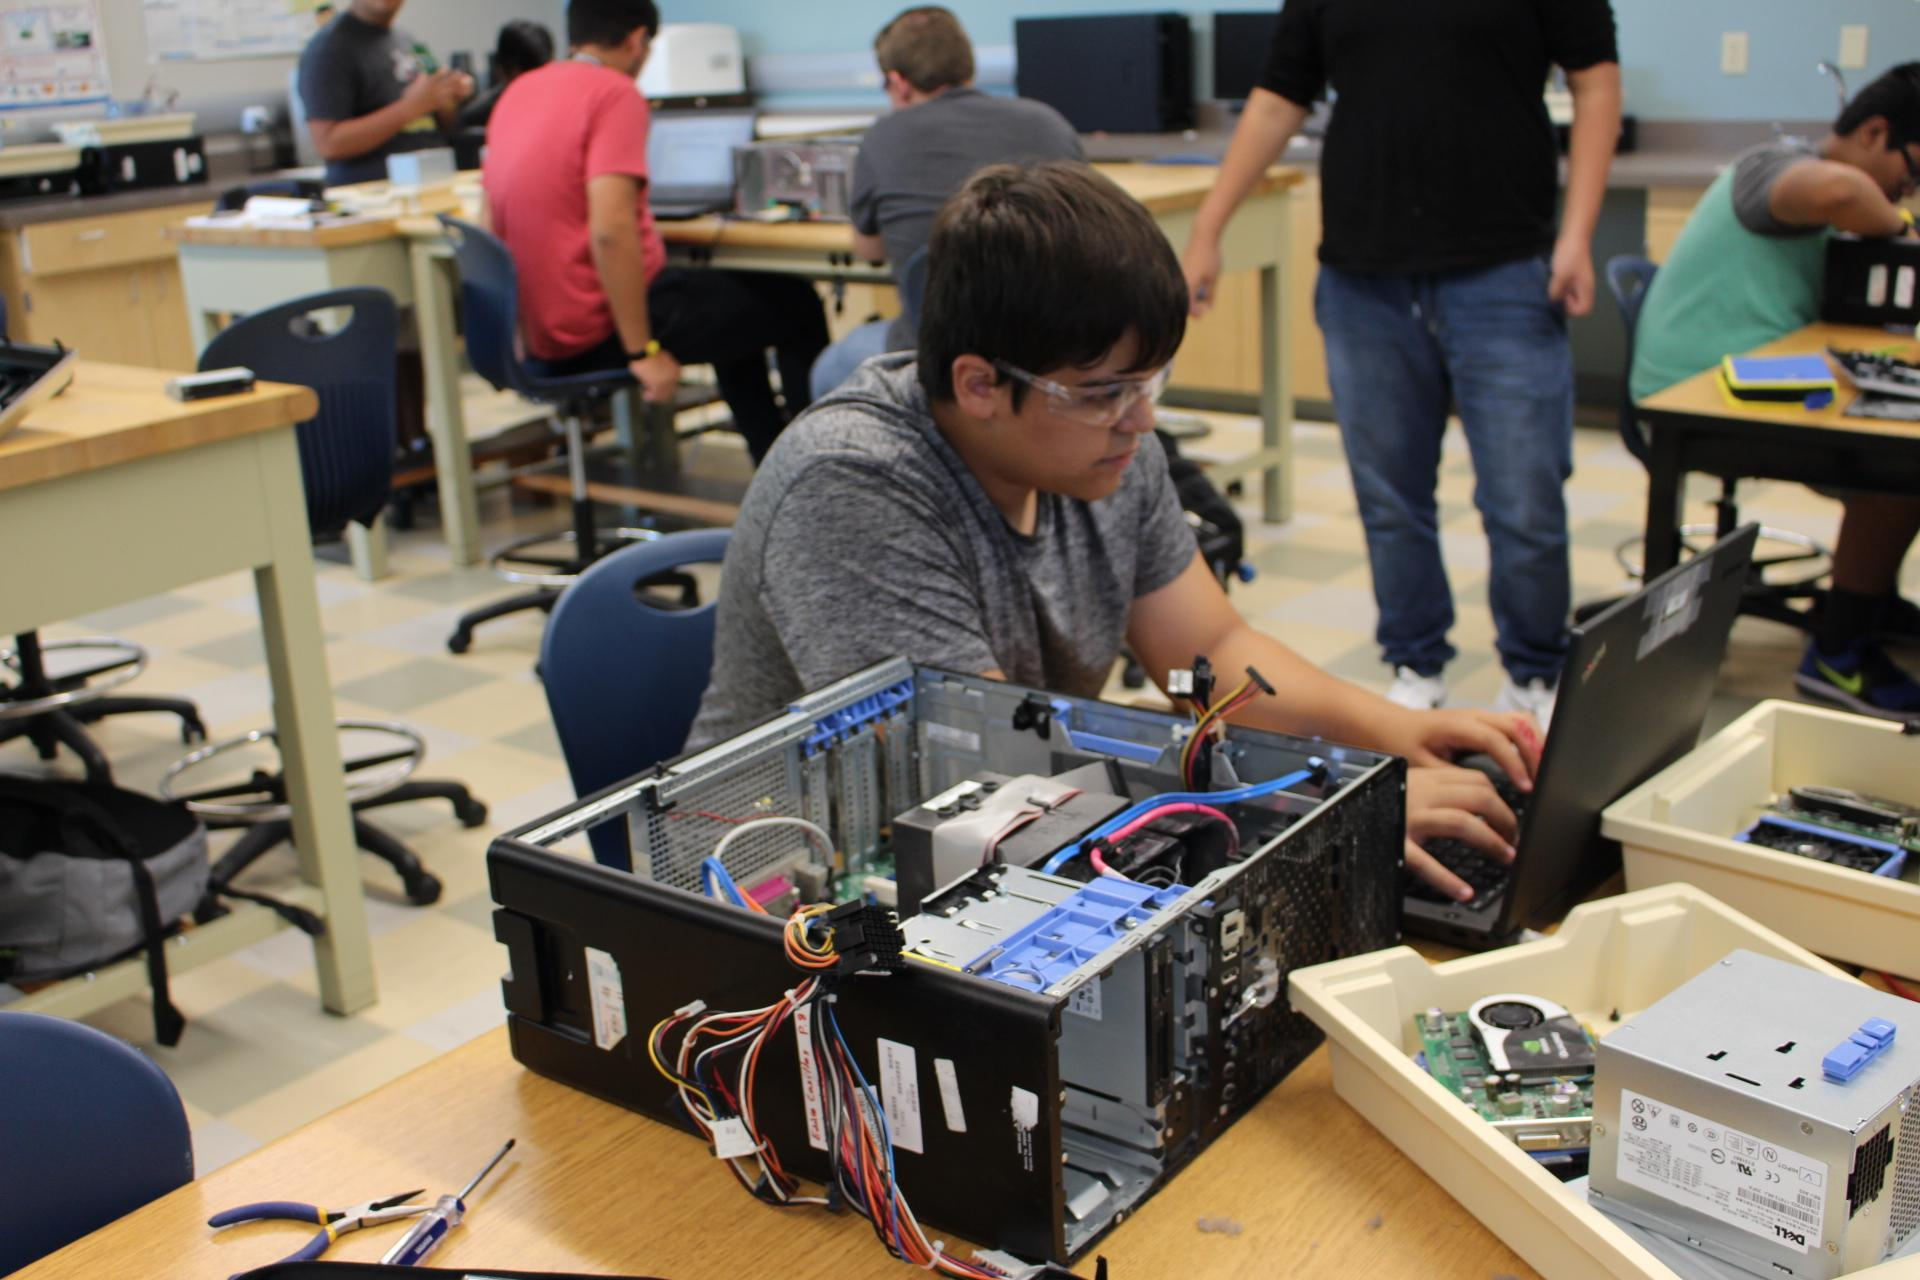 IT students working on a computer